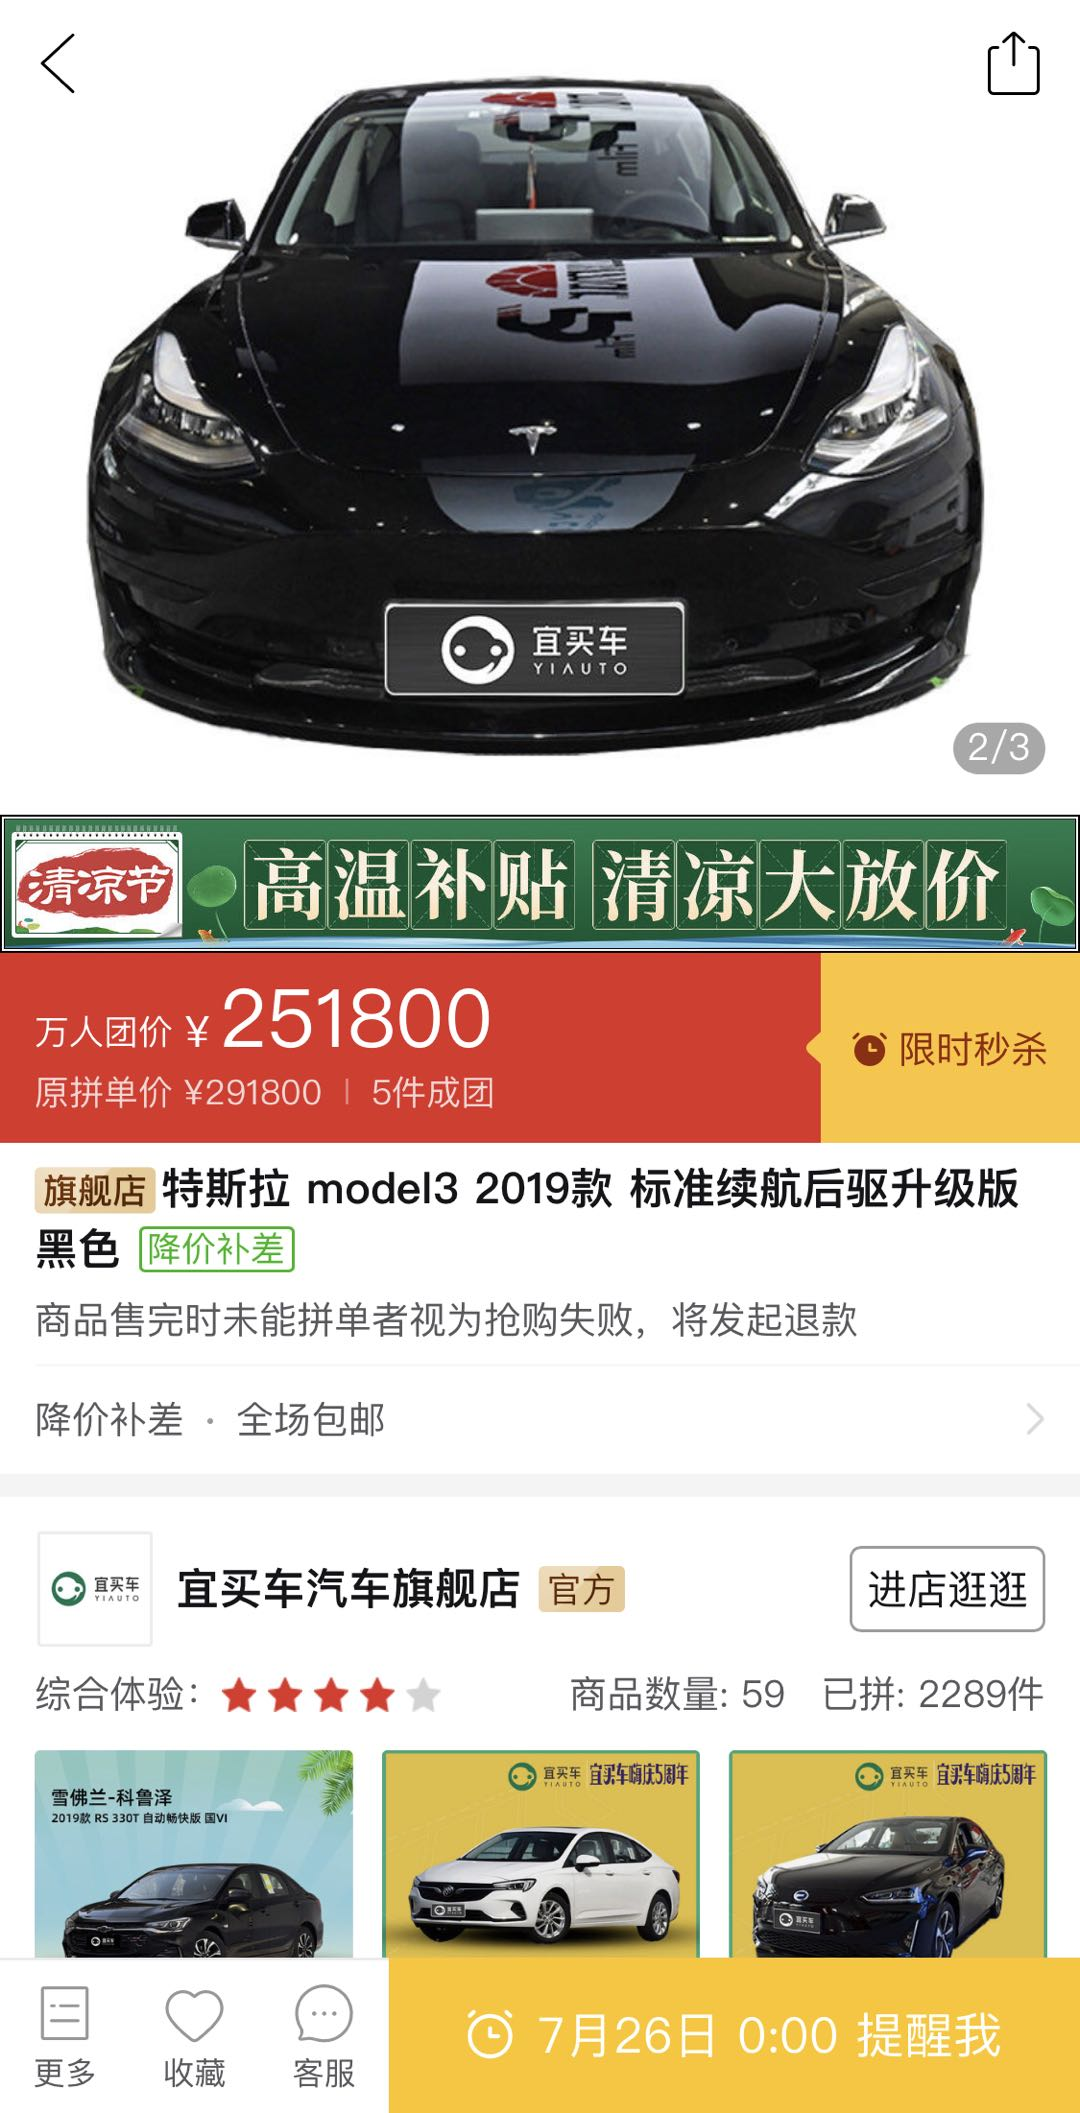 Well, Pinduoduo is helping Tesla keep cutting prices in China-cnTechPost